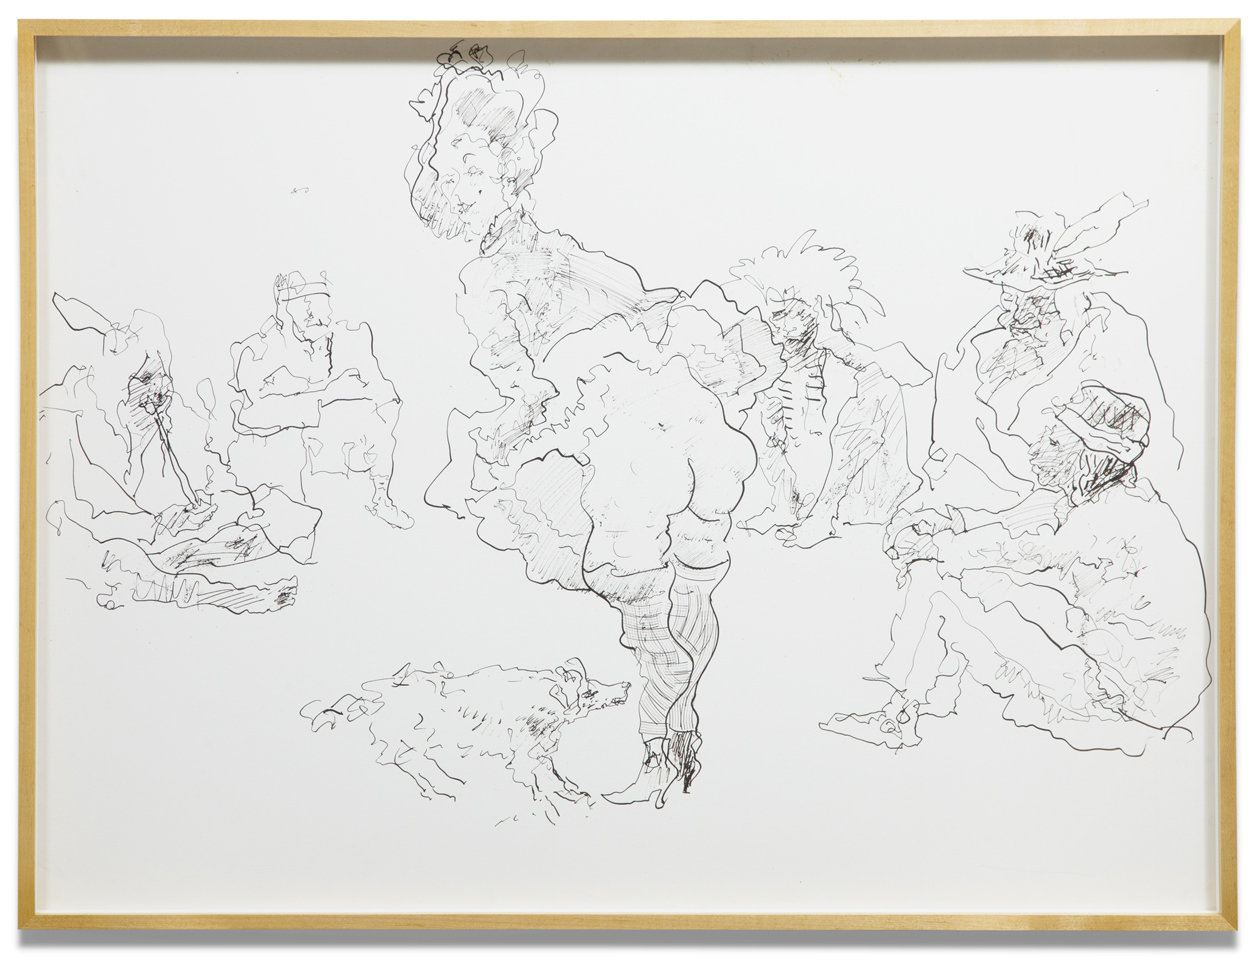 John Altoon,  Untitled (CI-28-B&W) , 1968, ink on paper, 30 x 40 inches